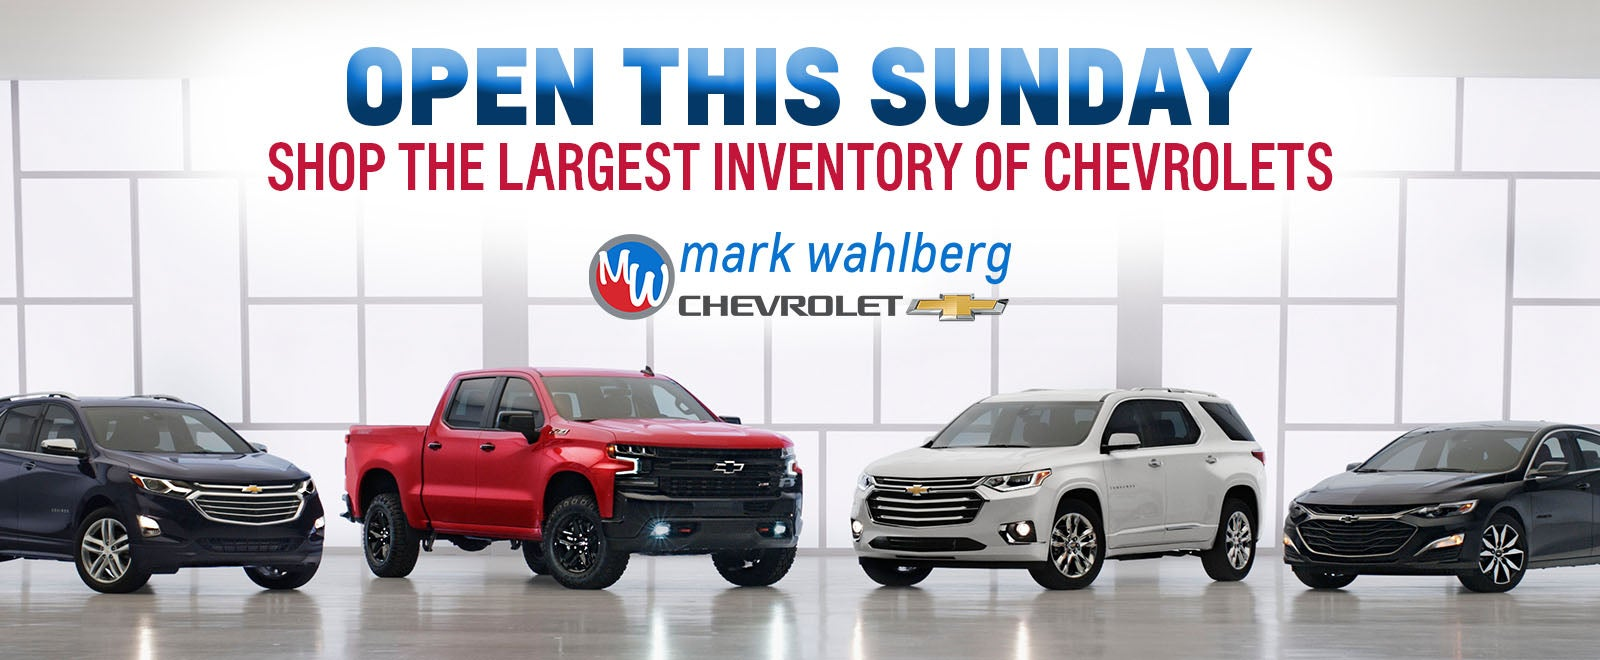 Chevrolet Dealers Columbus Ohio >> Chevy Dealer Columbus Oh Mark Wahlberg Chevrolet